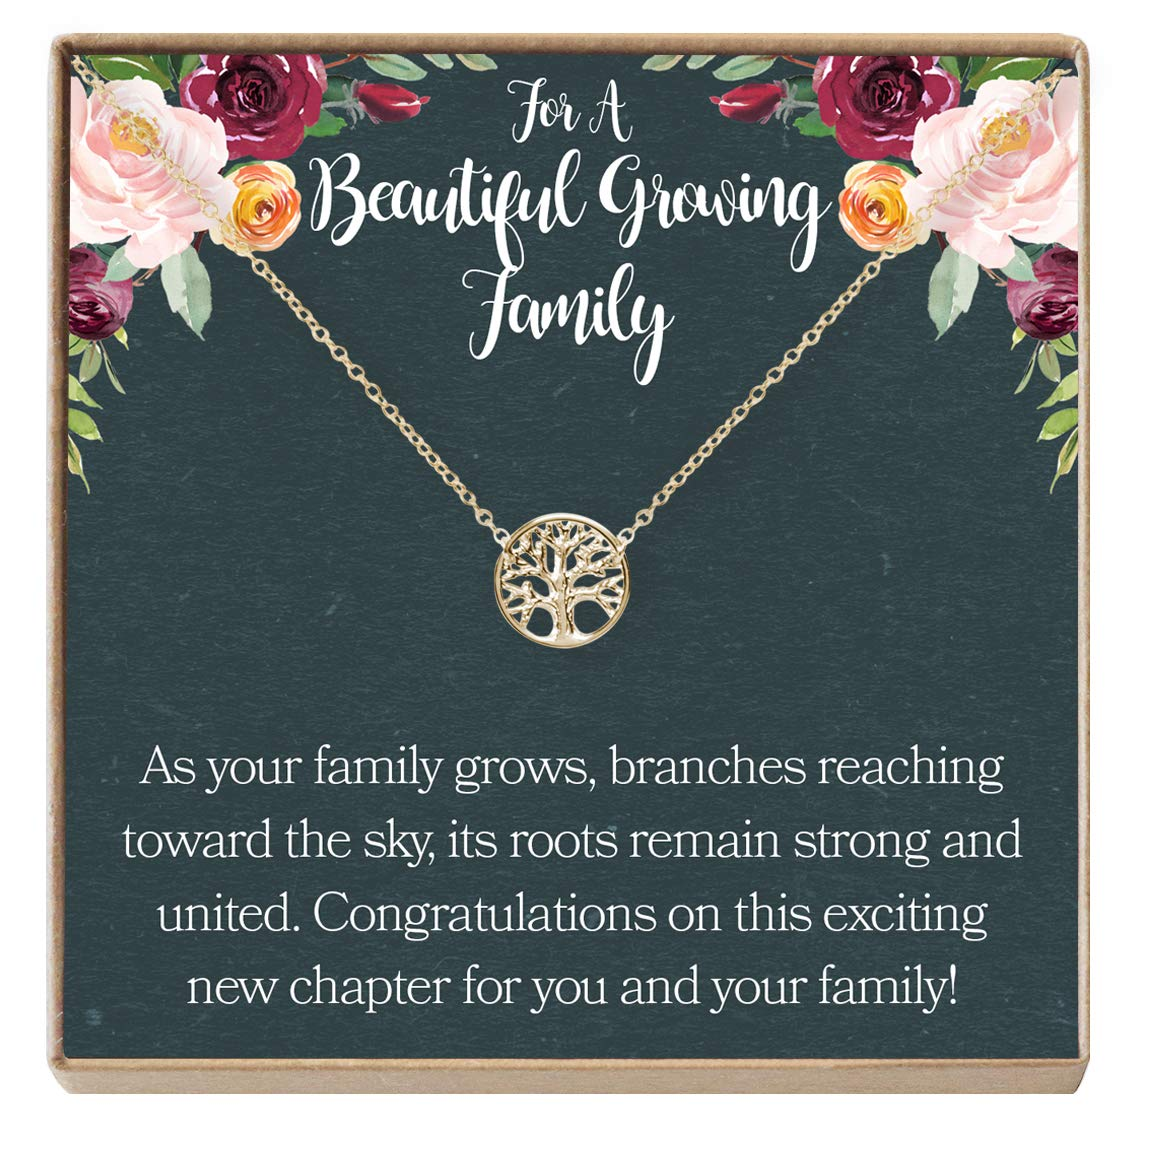 Necklace Expectant Mother Pregnant Friend Dear Ava Pregnancy for Her New Mom Gift Baby Shower Rose-Gold-Plated-Brass NA Tree Tree